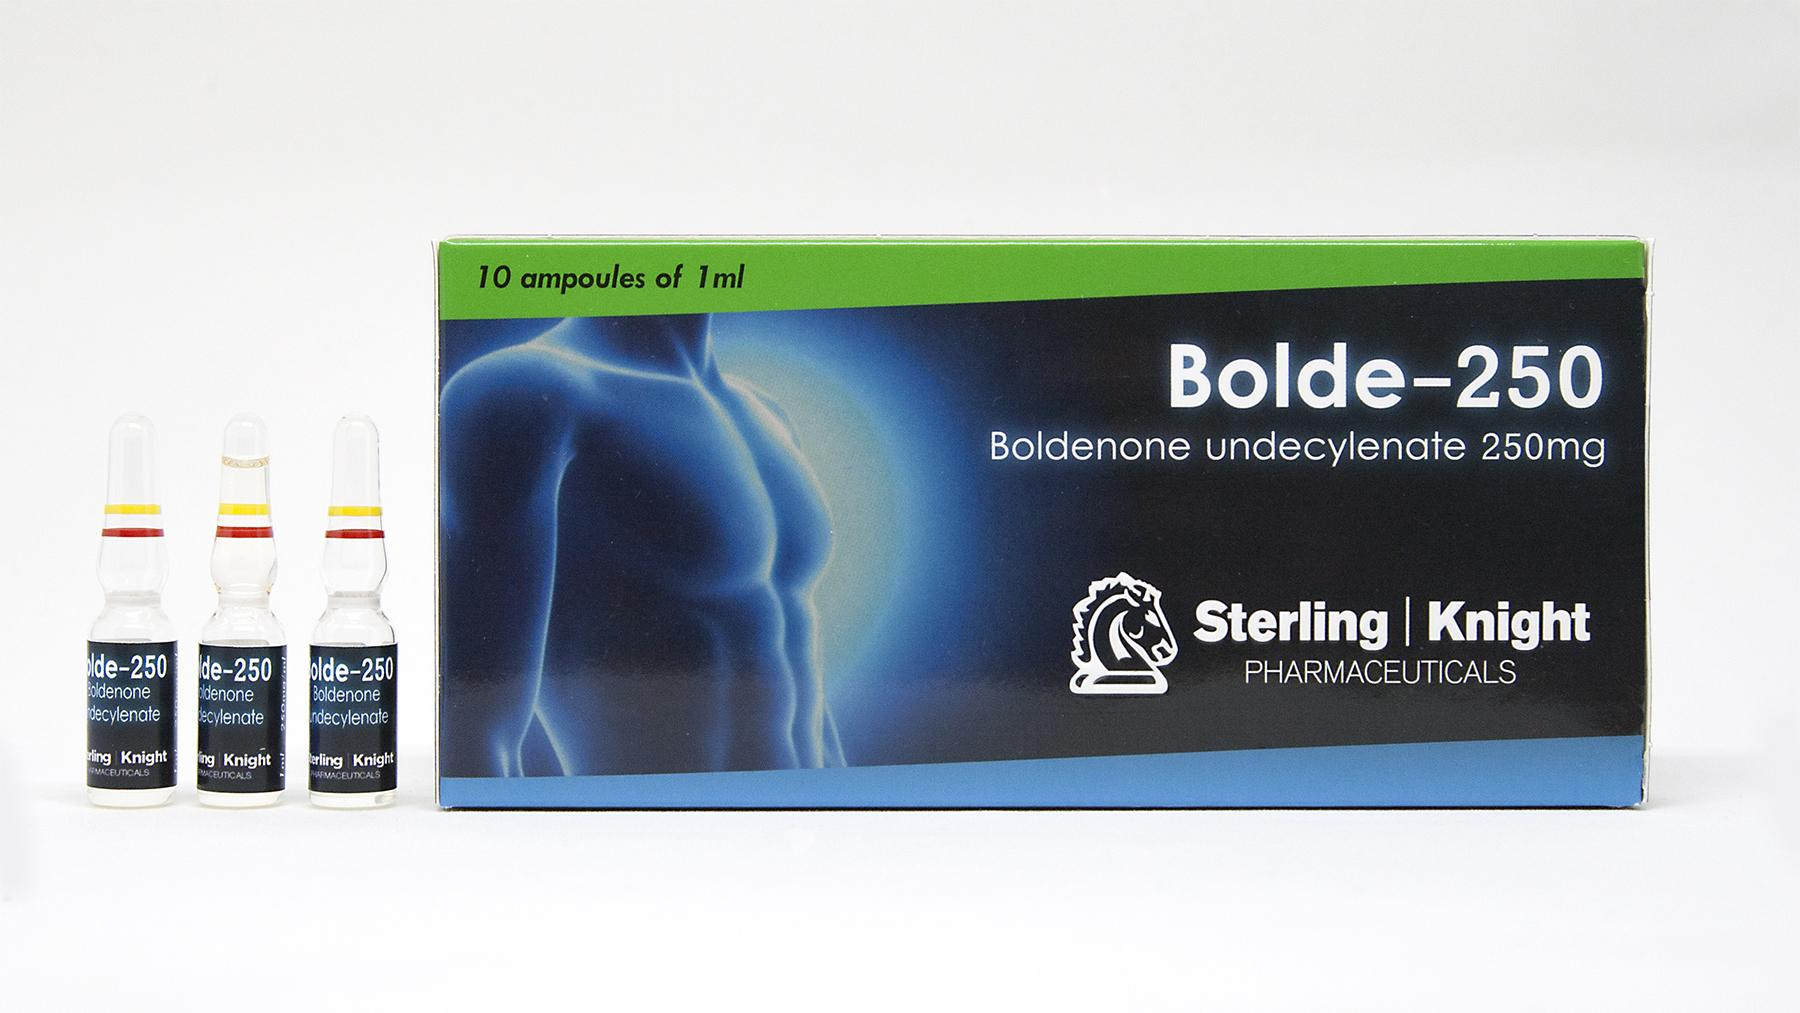 bolde250-1ml-sterling